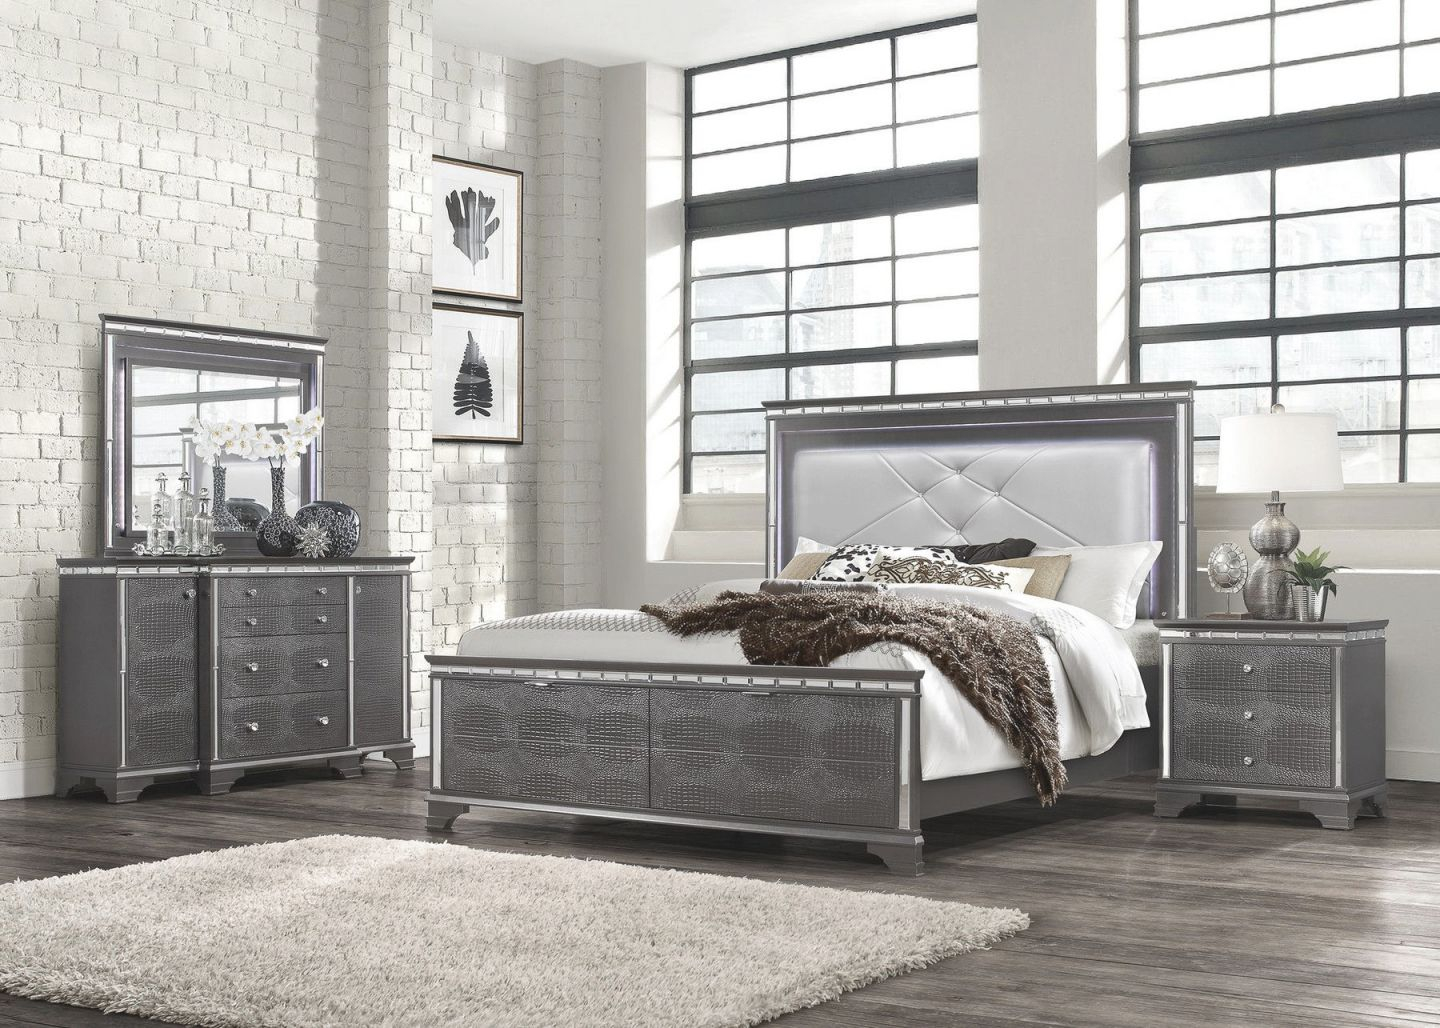 Penelope King Set King Size B,2Ns,dr,mr throughout Luxury Bedroom Sets King